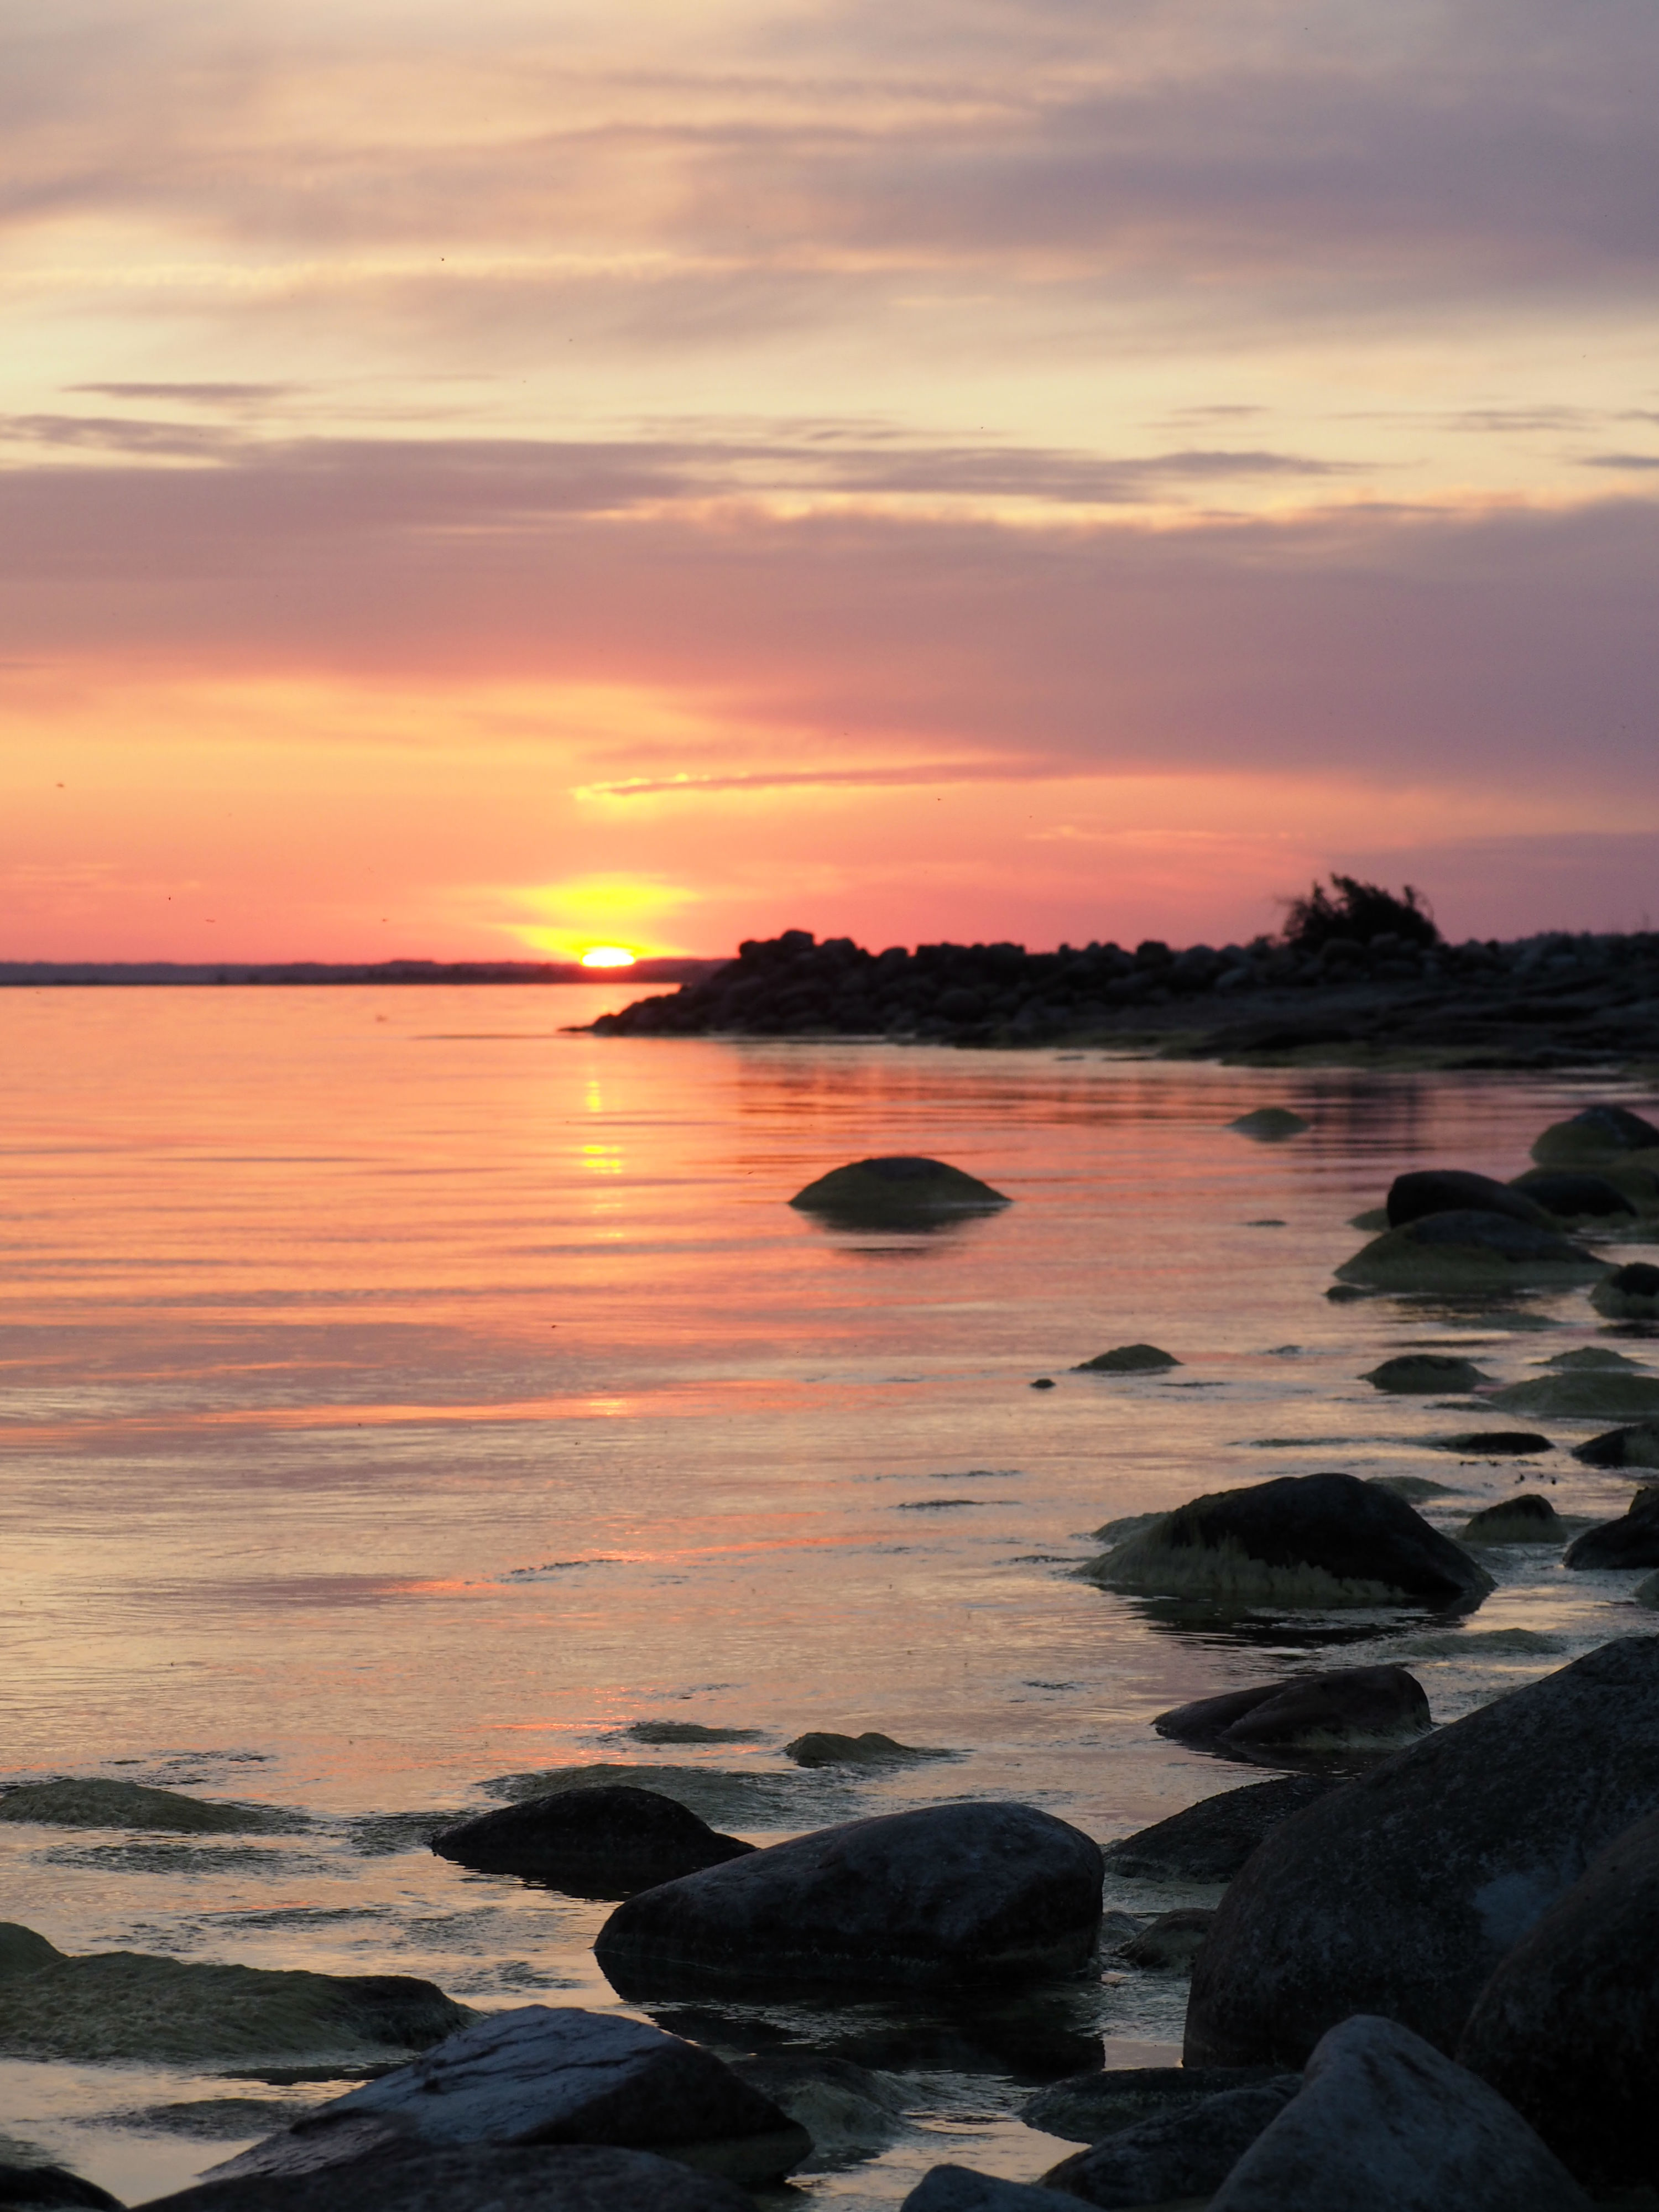 5 Good Reasons to Visit Åland Islands Right Now